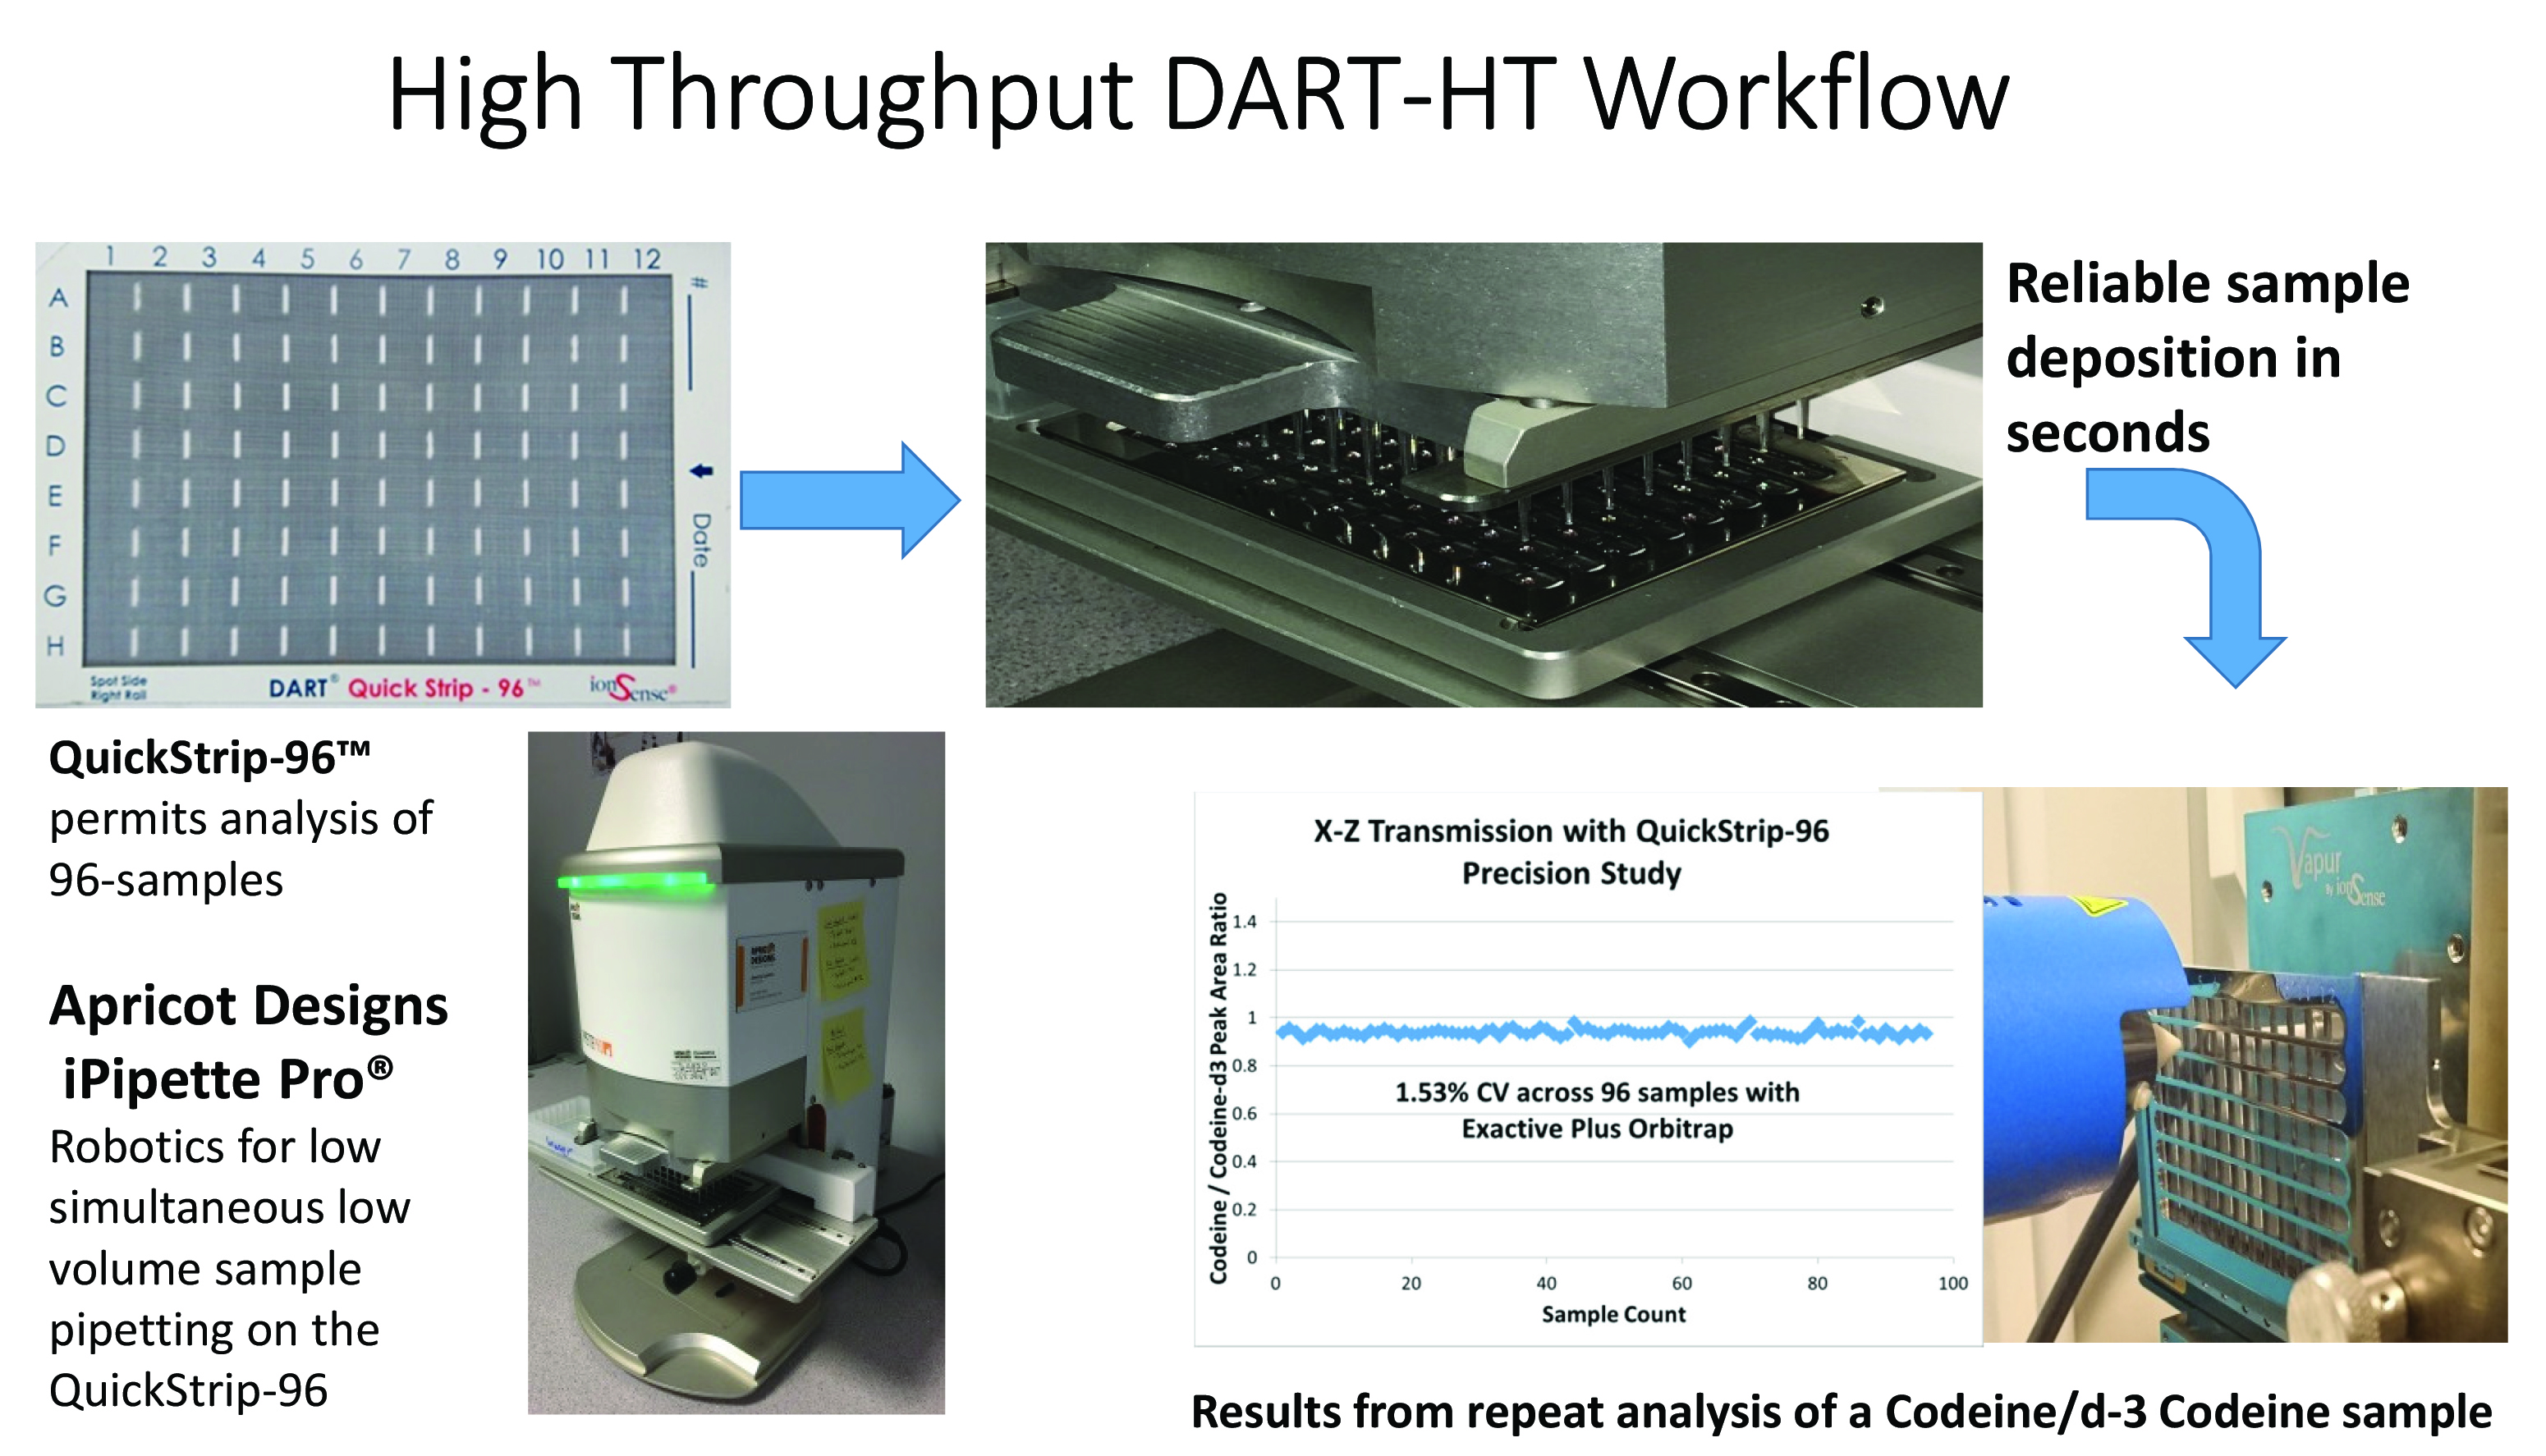 High Throughput DART HT workflow